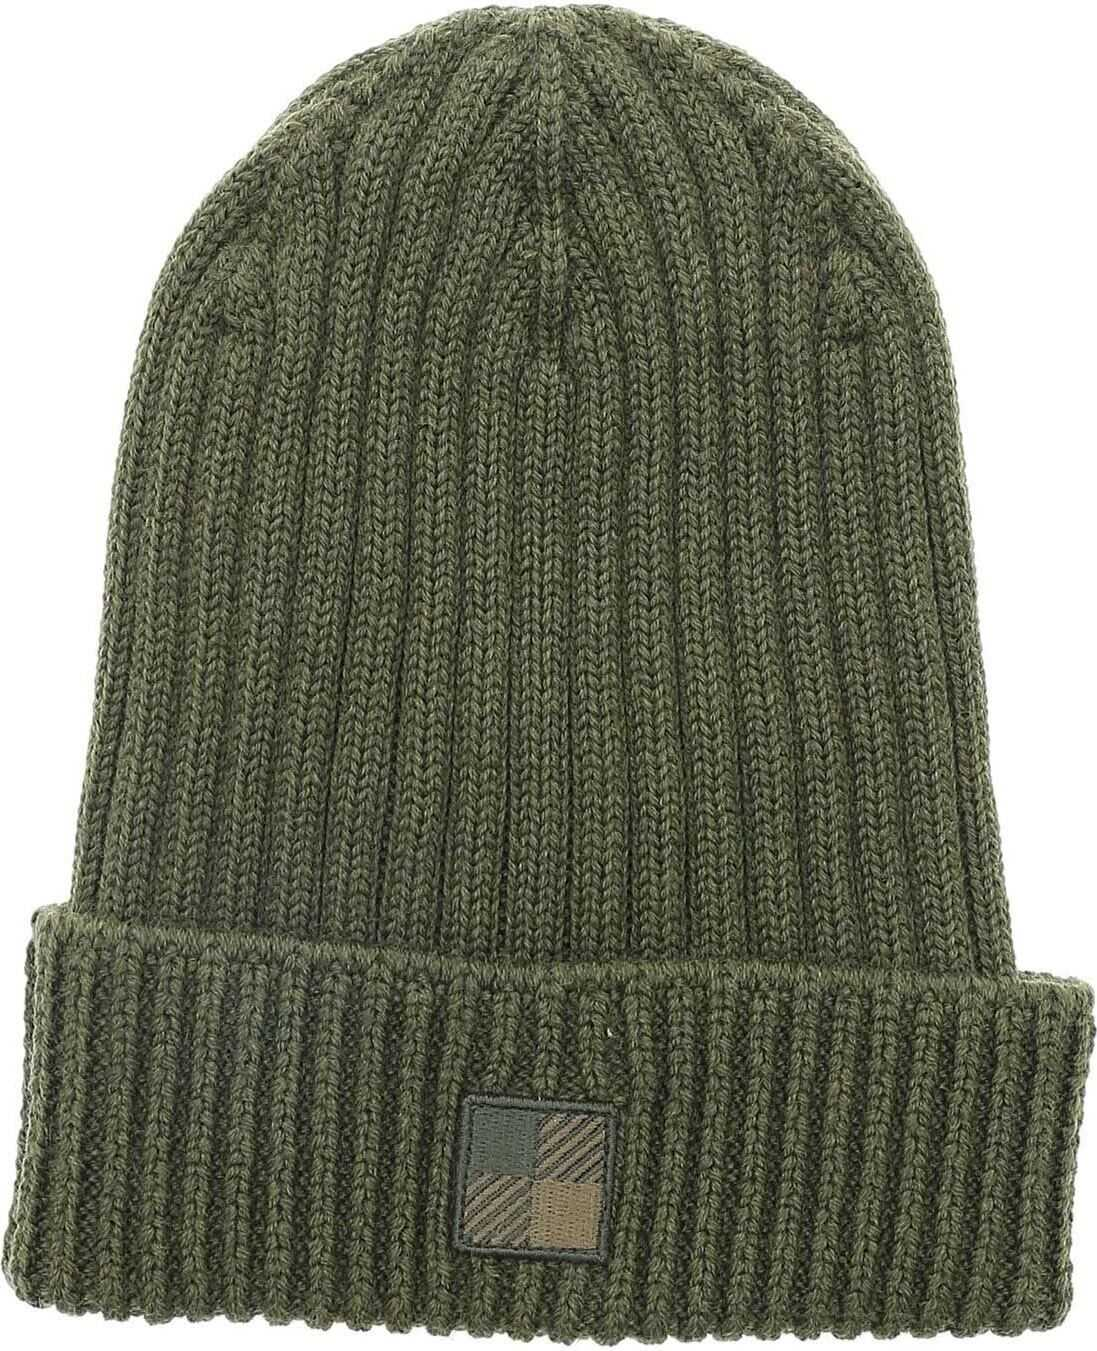 Logo Patch Beanie In Military Green thumbnail